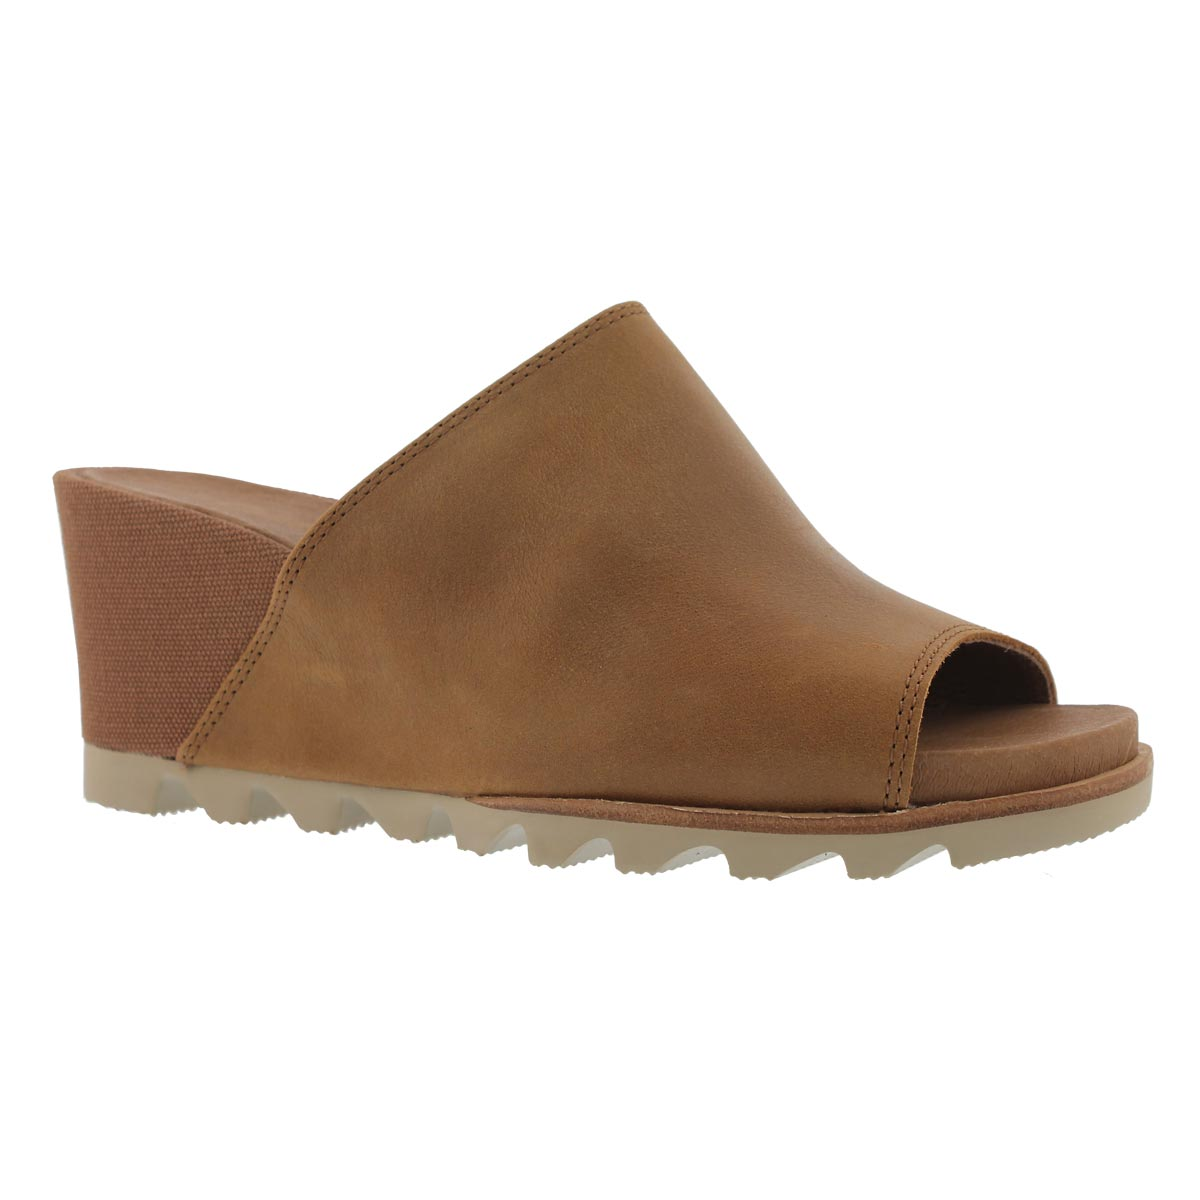 Women's JOANIE MULE II brown wedge sandals